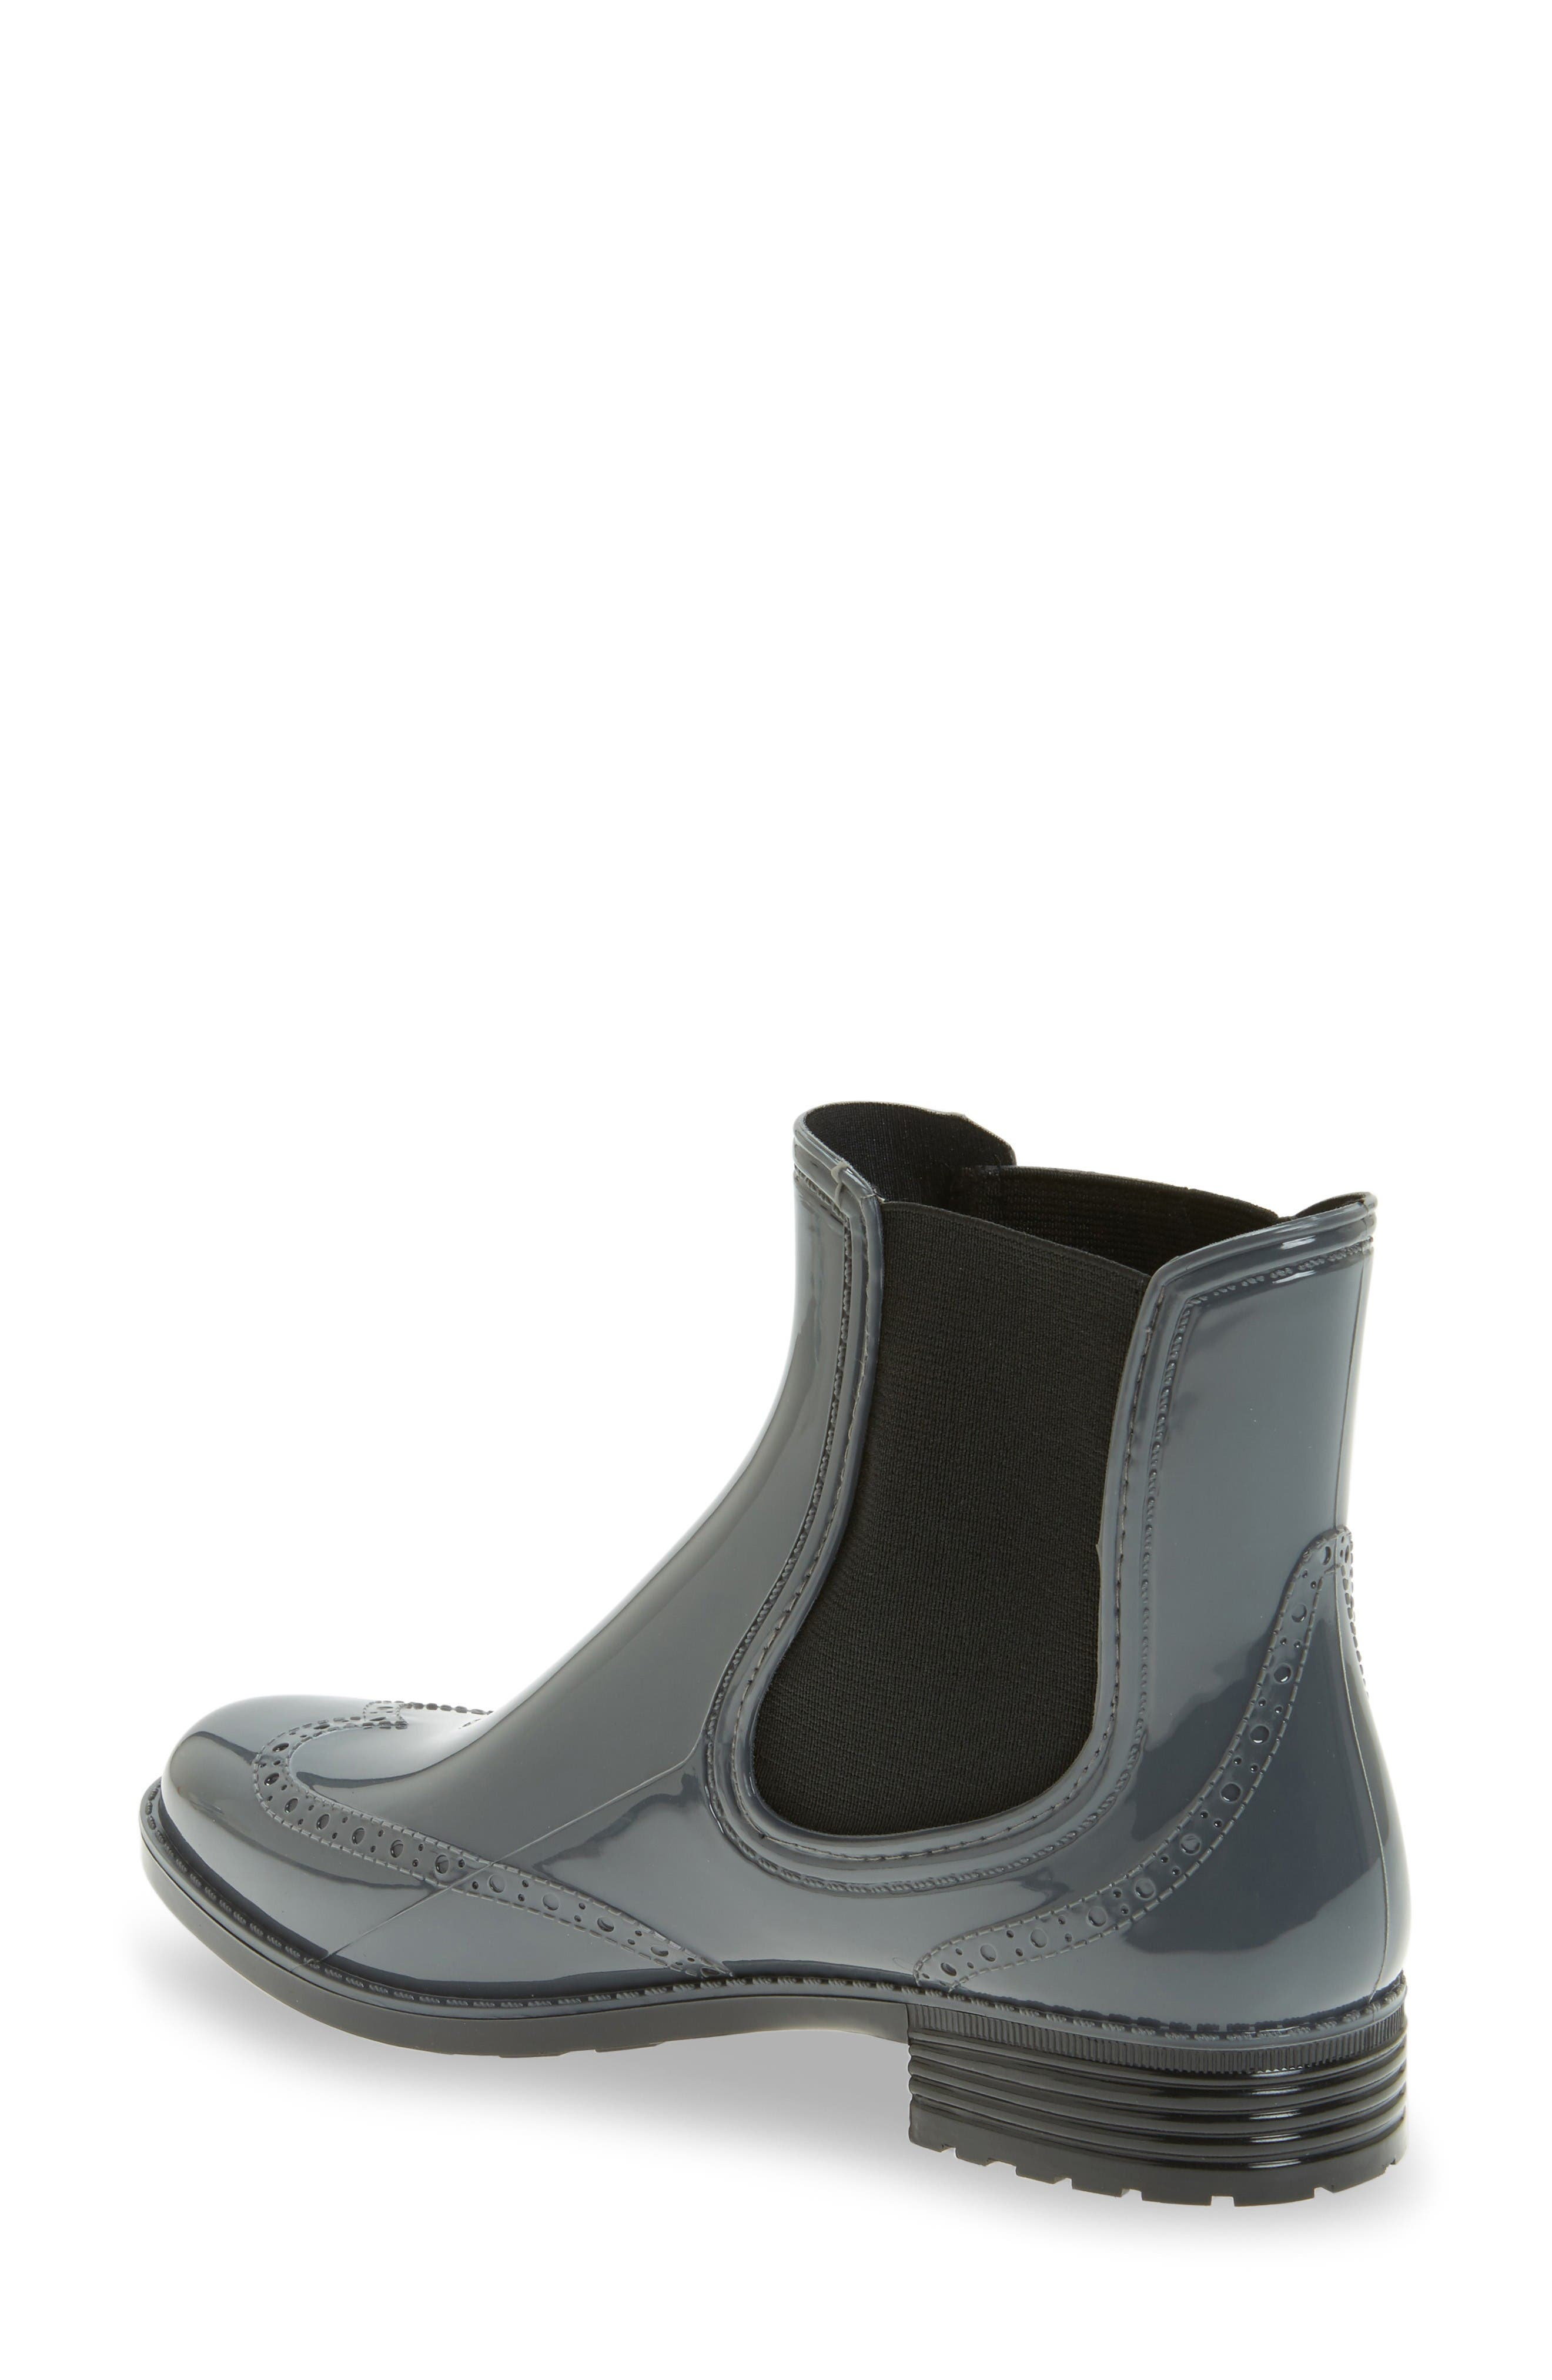 Vienna Chelsea Rain Boot,                             Alternate thumbnail 2, color,                             Charcoal